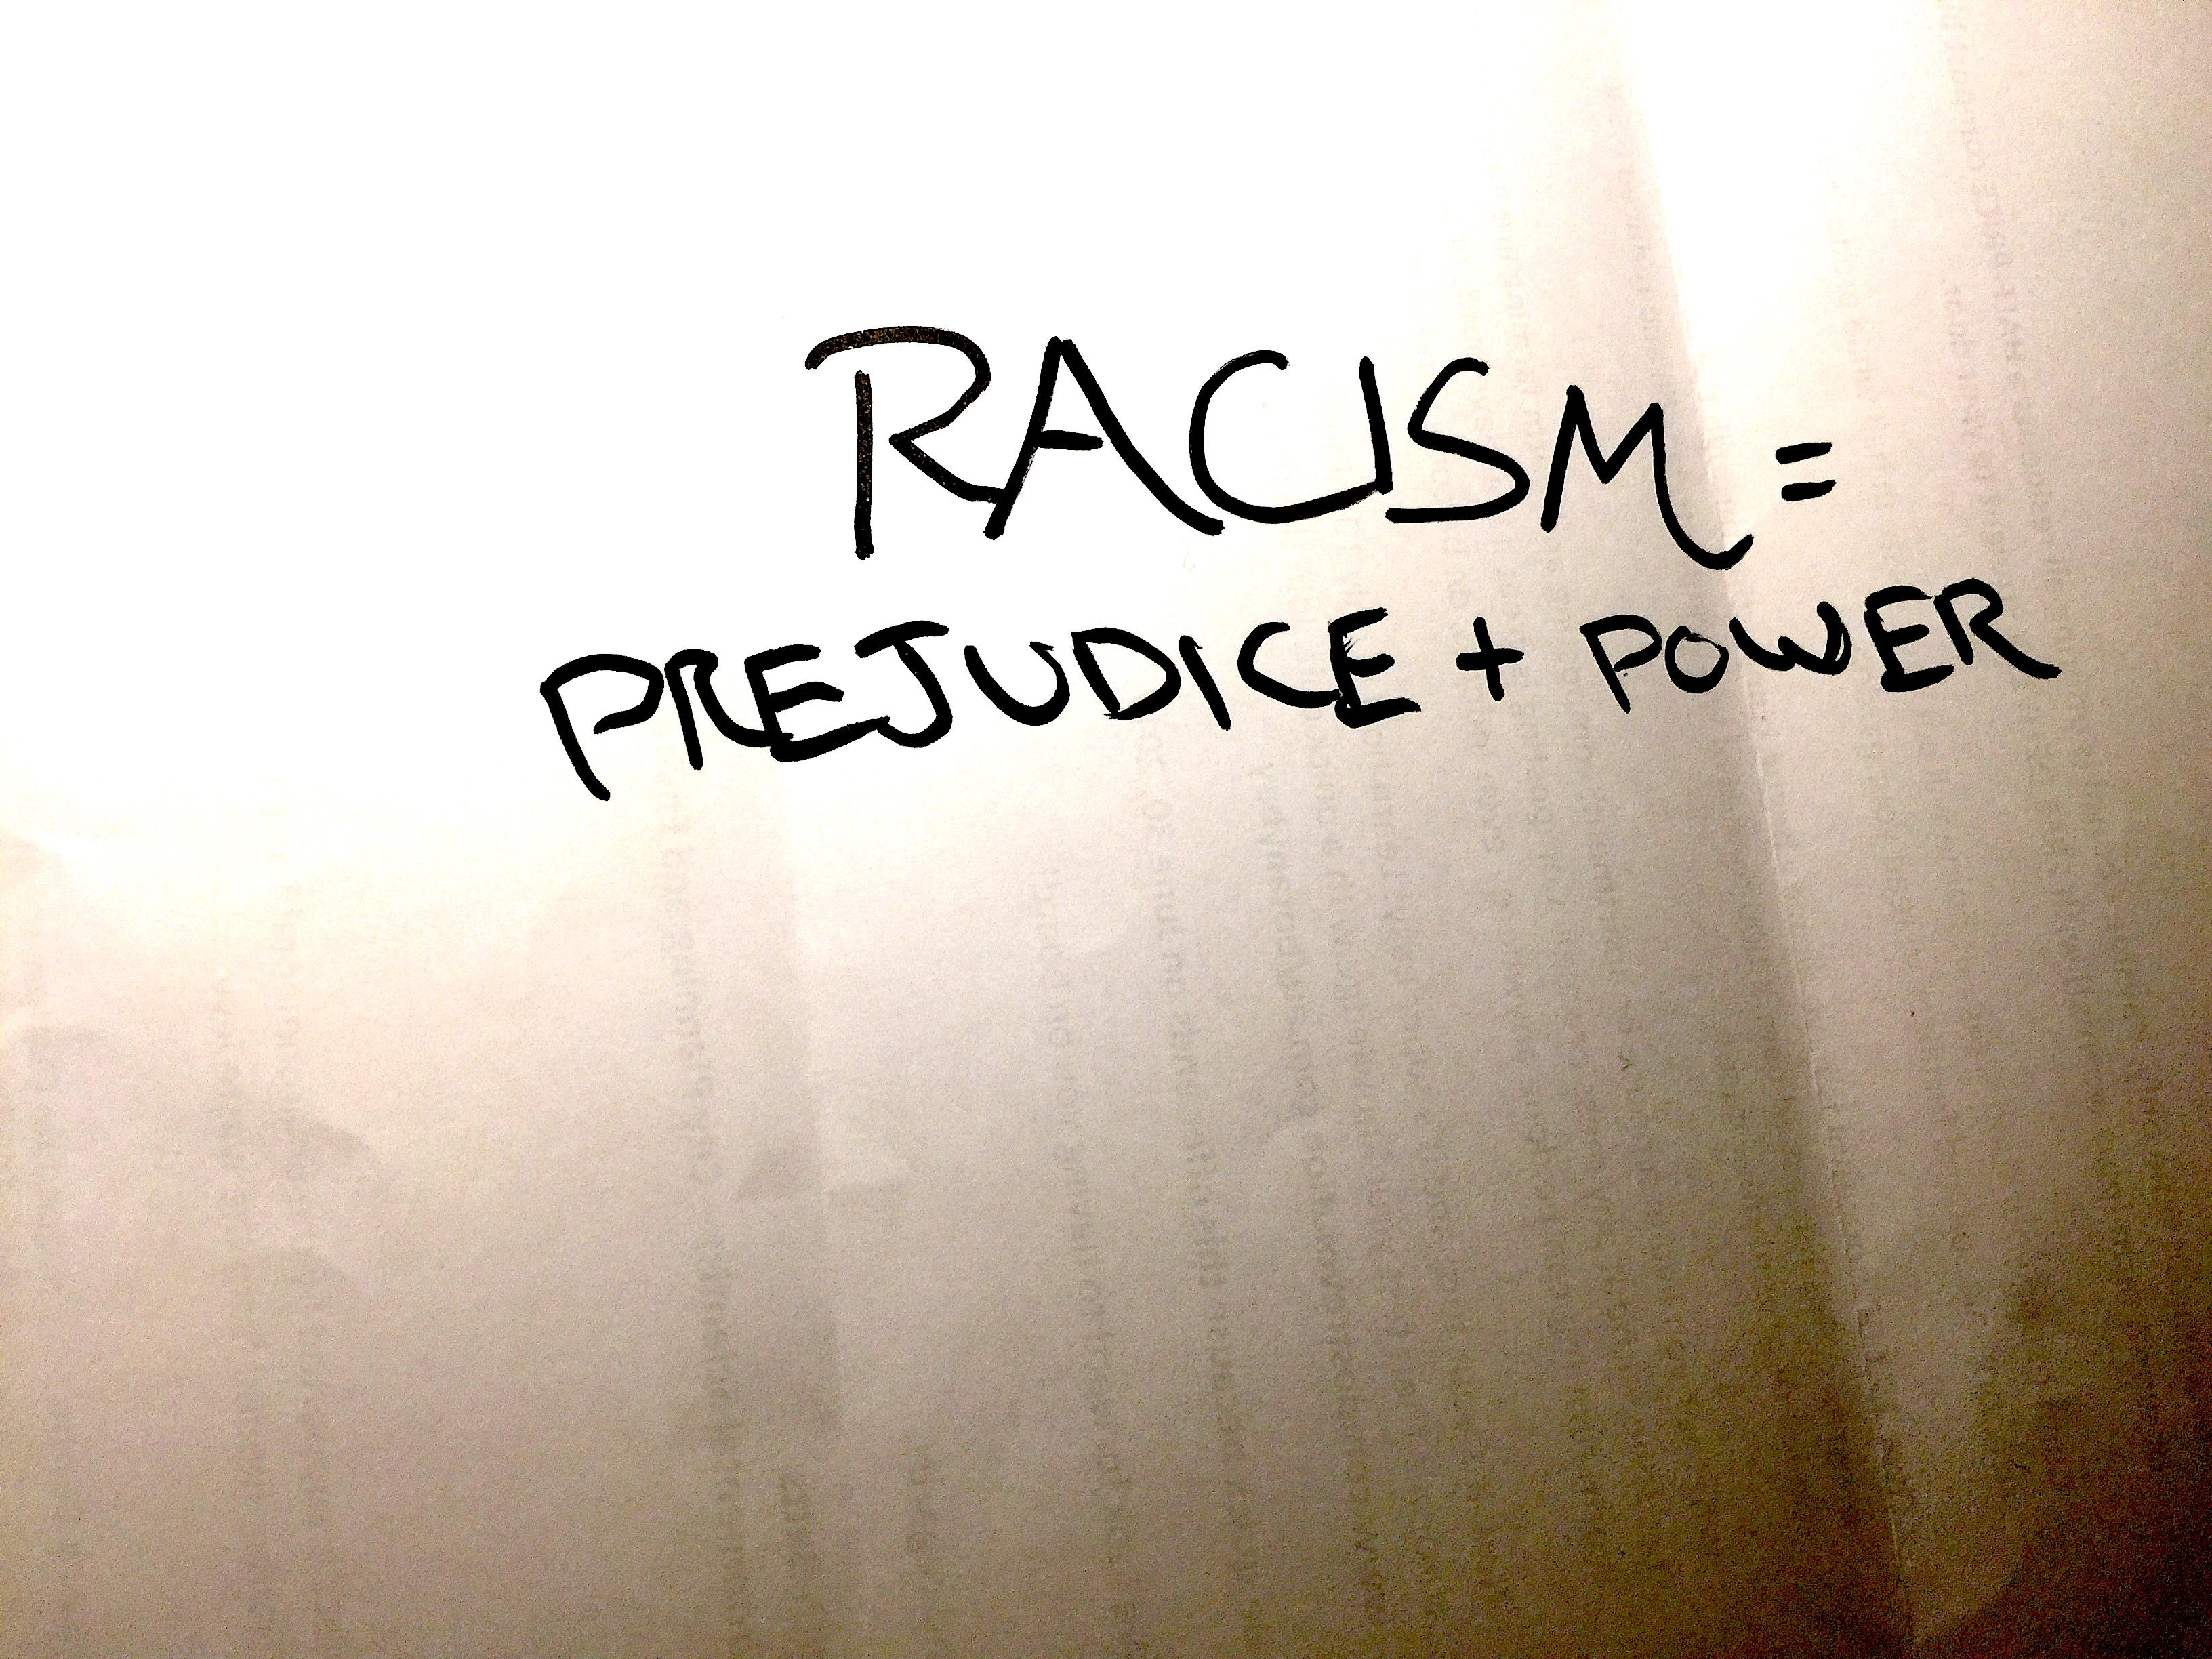 racism does not equal prejudice + power - areo